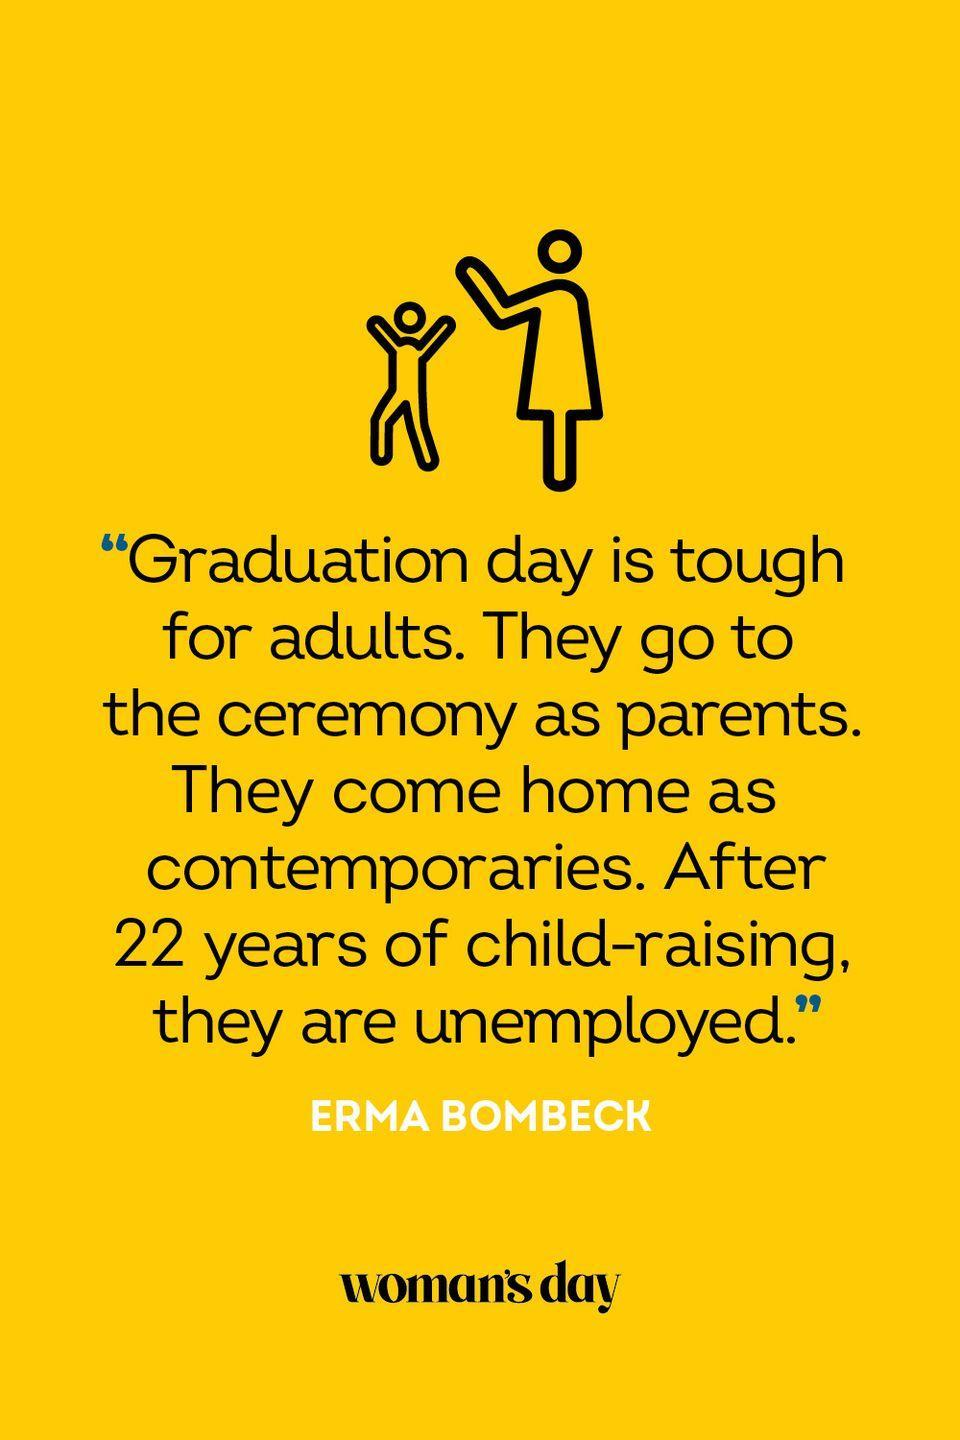 """<p>""""Graduation day is tough for adults. They go to the ceremony as parents. They come home as contemporaries. After 22 years of child-raising, they are unemployed.""""</p>"""